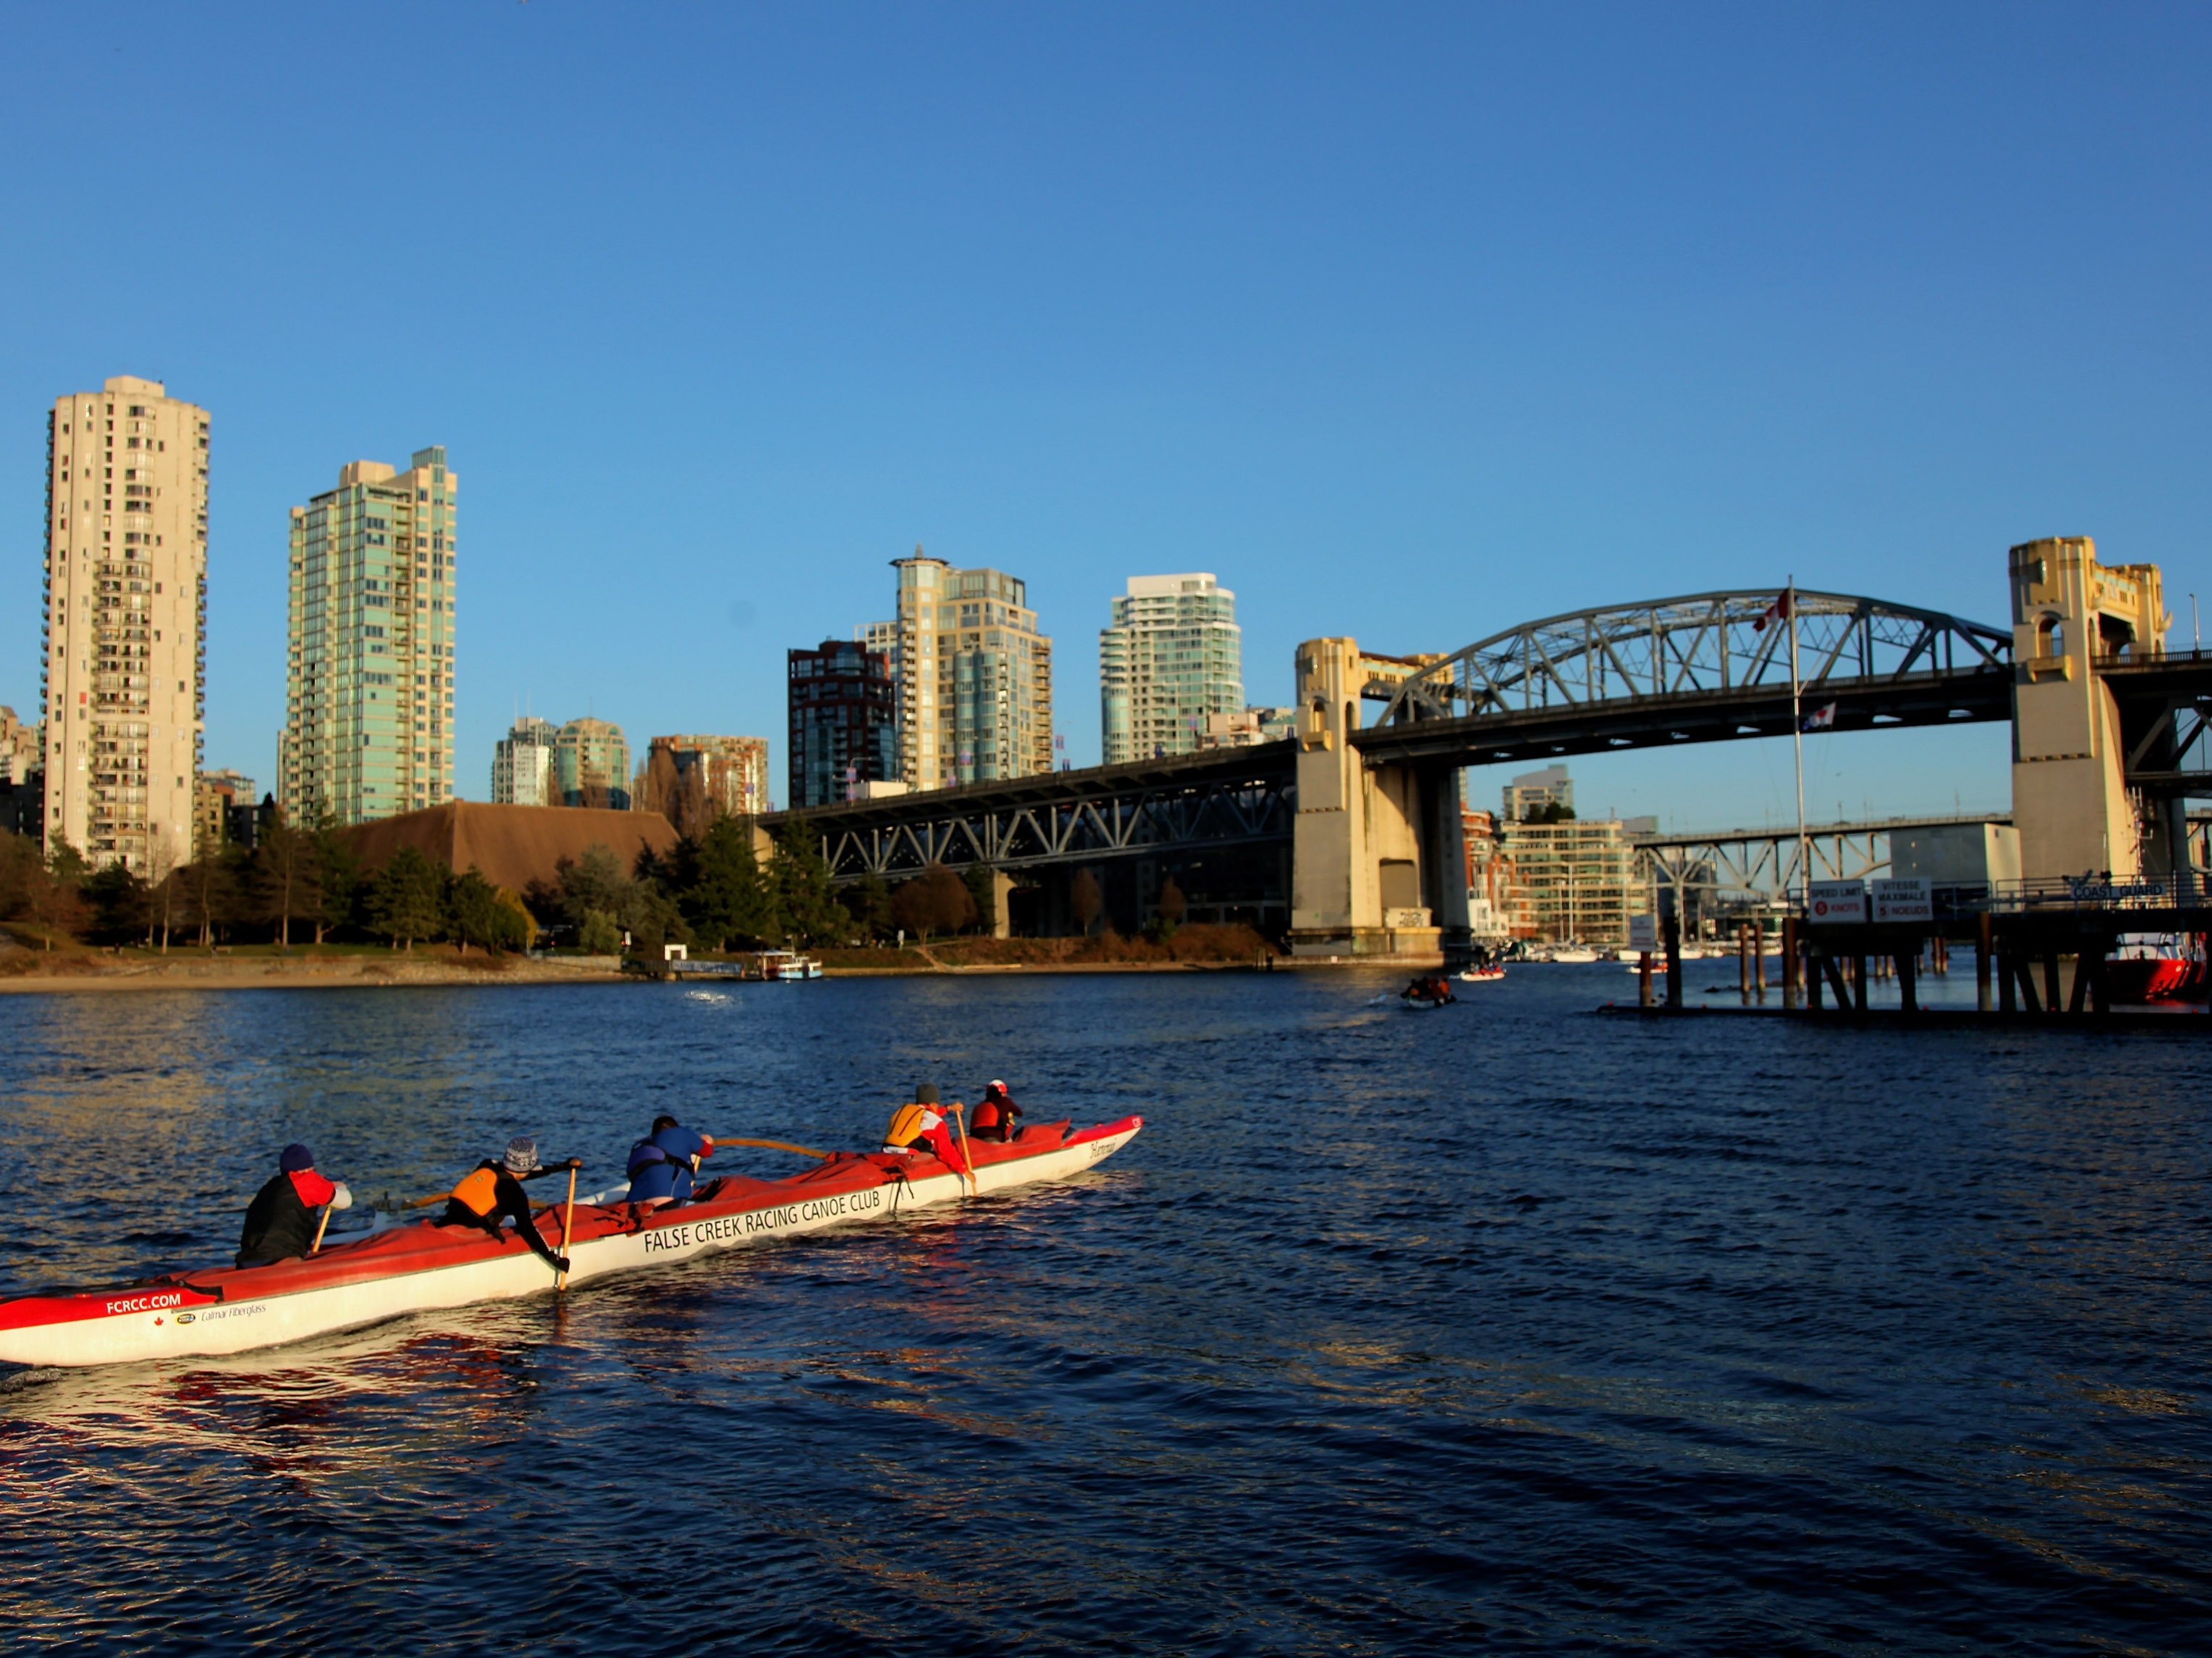 Vancouver ranks #5 in the world in terms of livability.